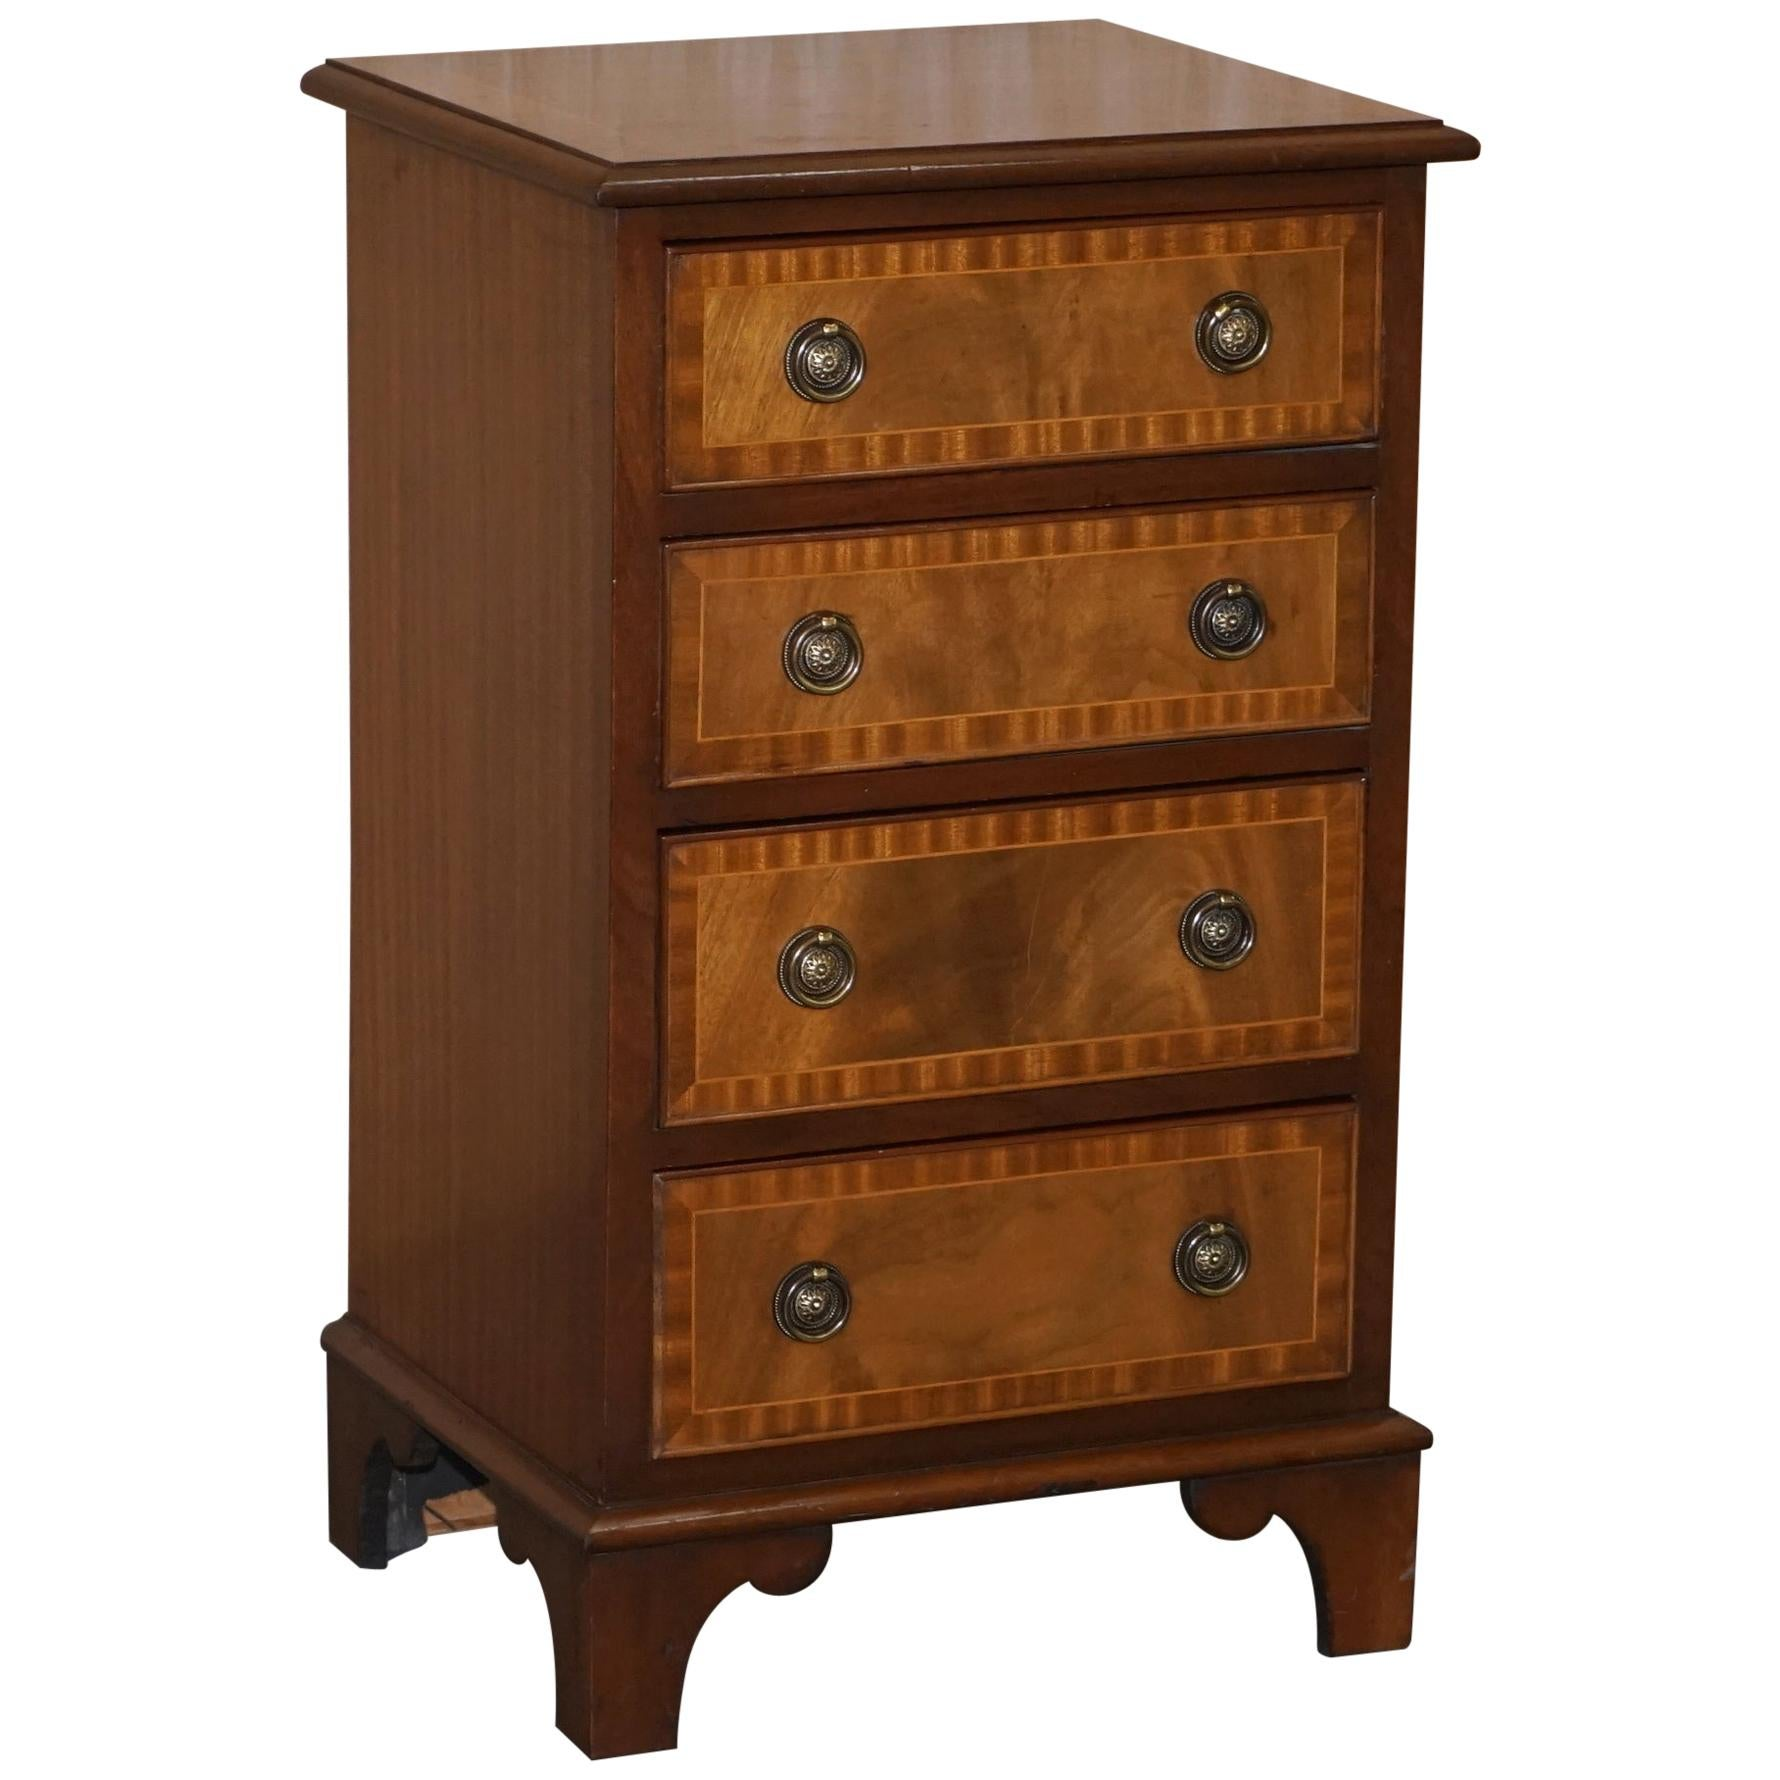 Stunning Walnut & Hardwood Chest of Drawers Lamp End Wine Bedside Table Sized